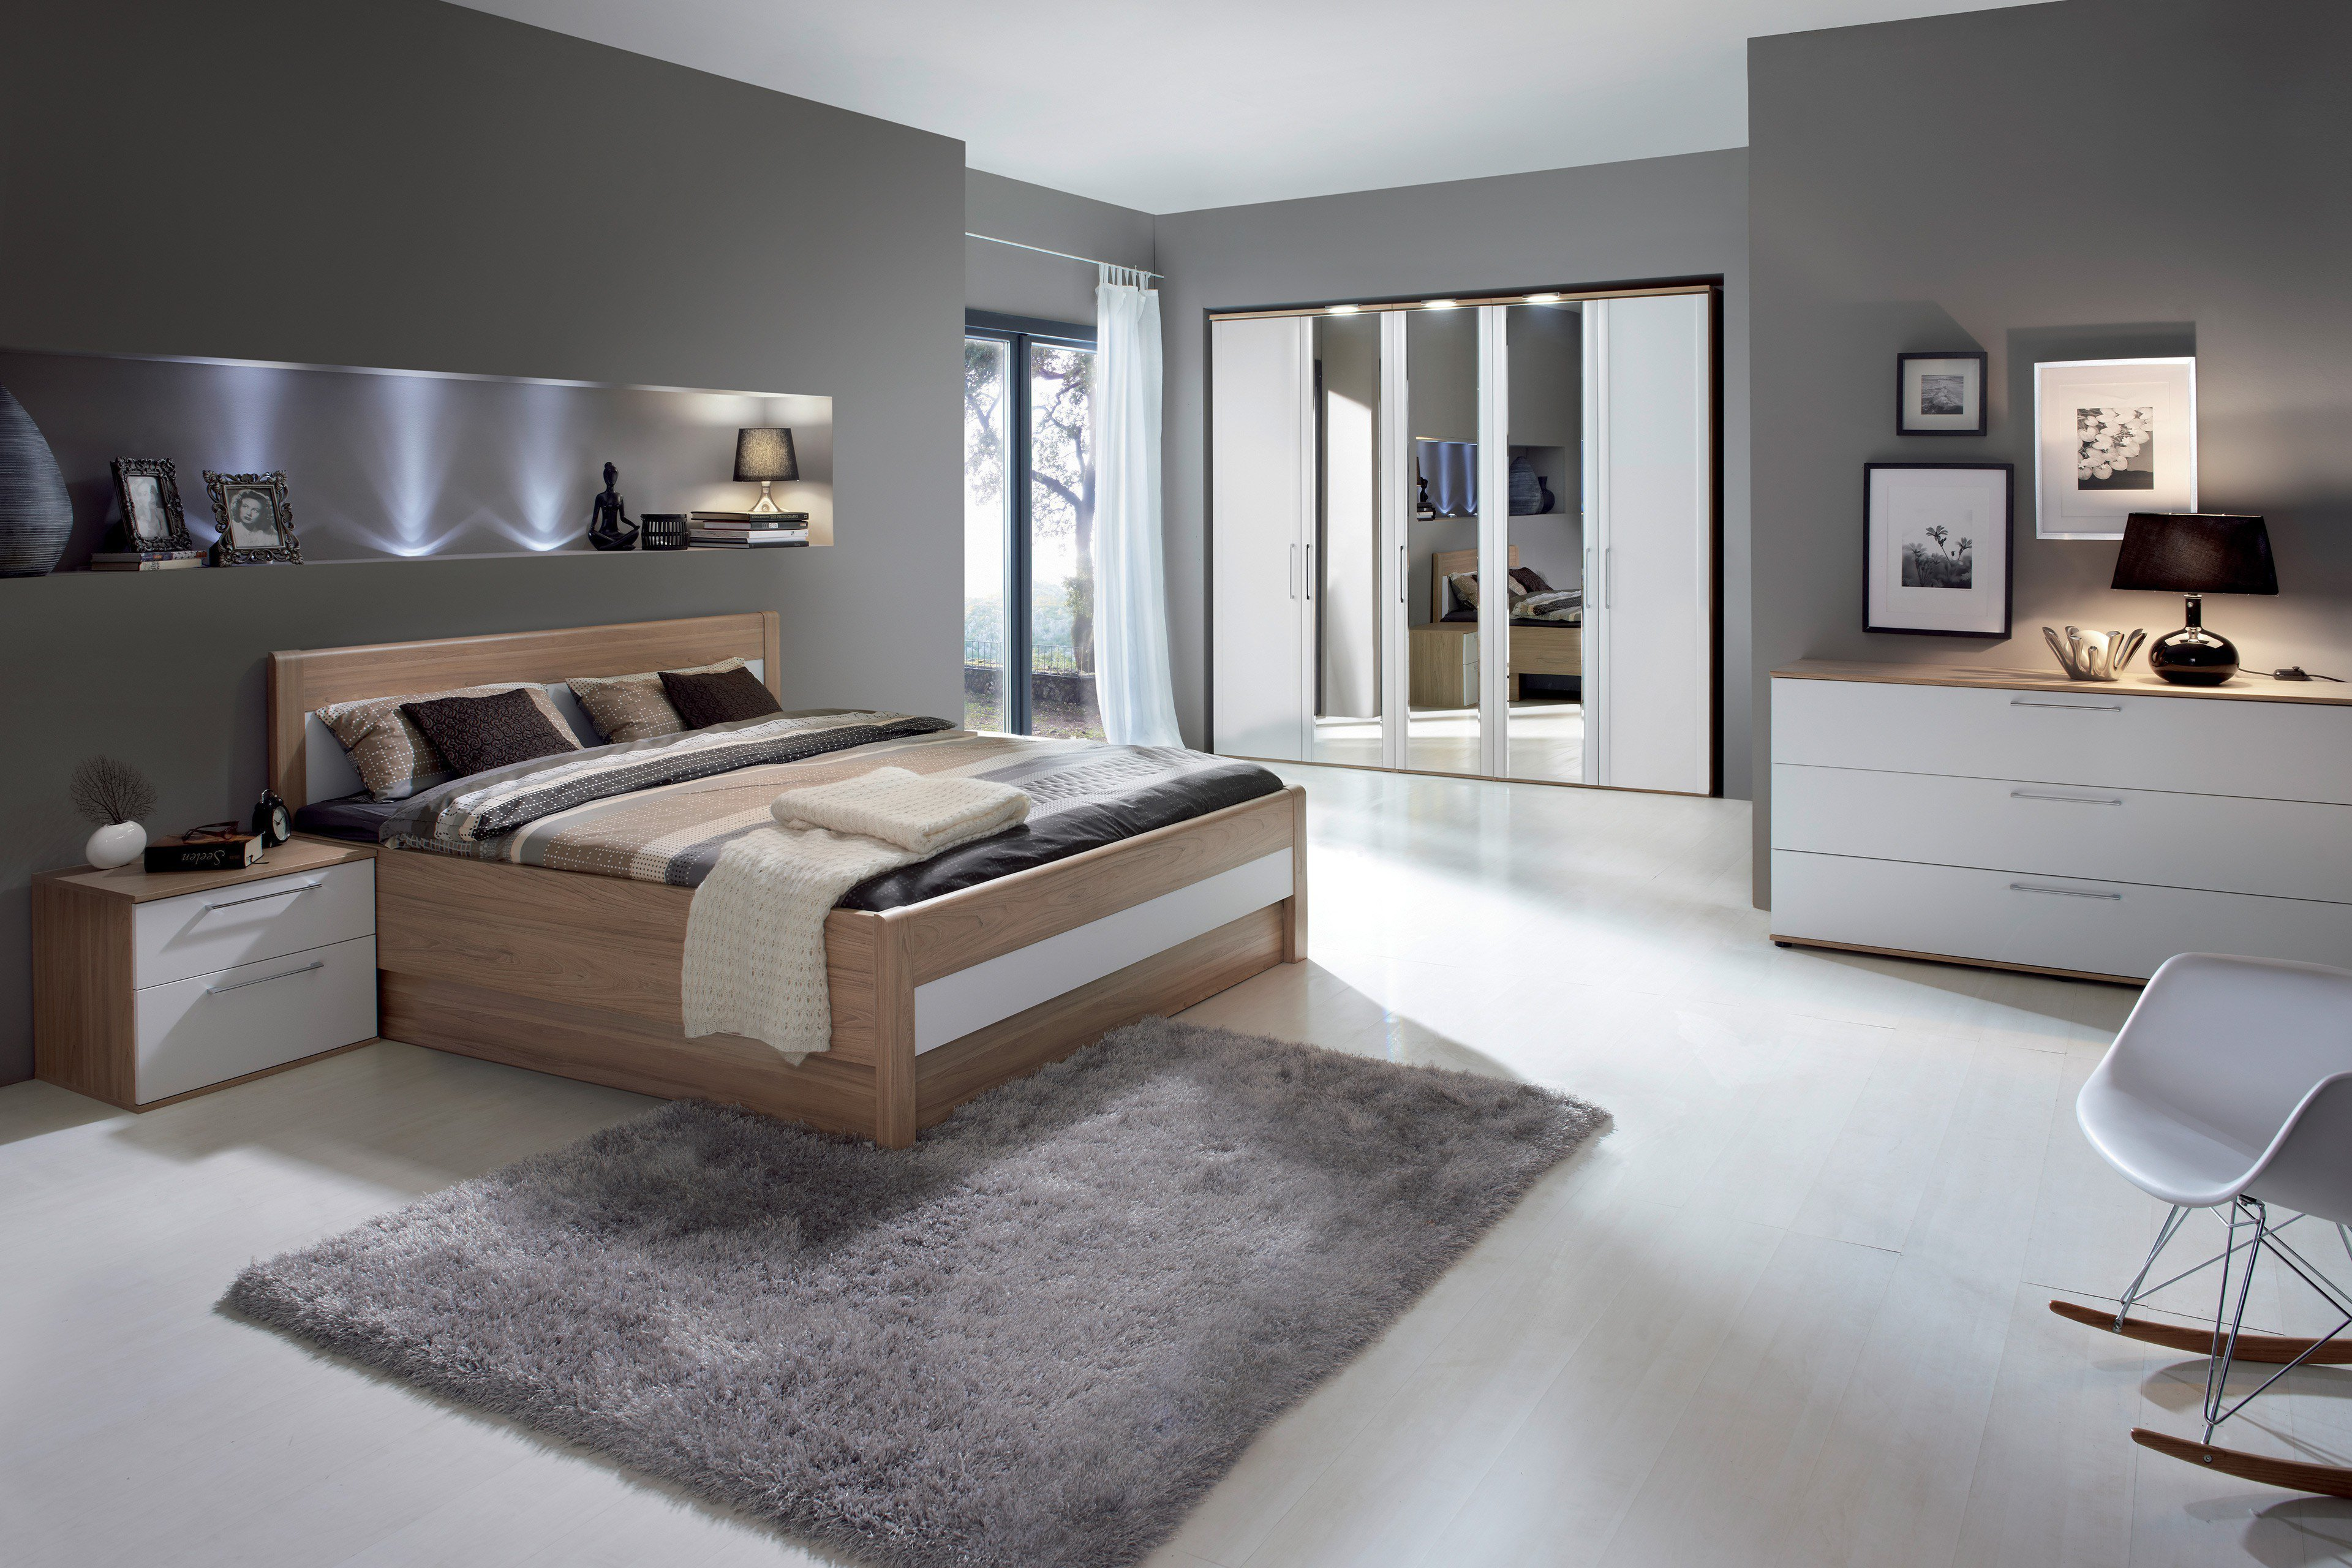 nolte belvento schlafzimmer sonoma eiche m bel letz. Black Bedroom Furniture Sets. Home Design Ideas